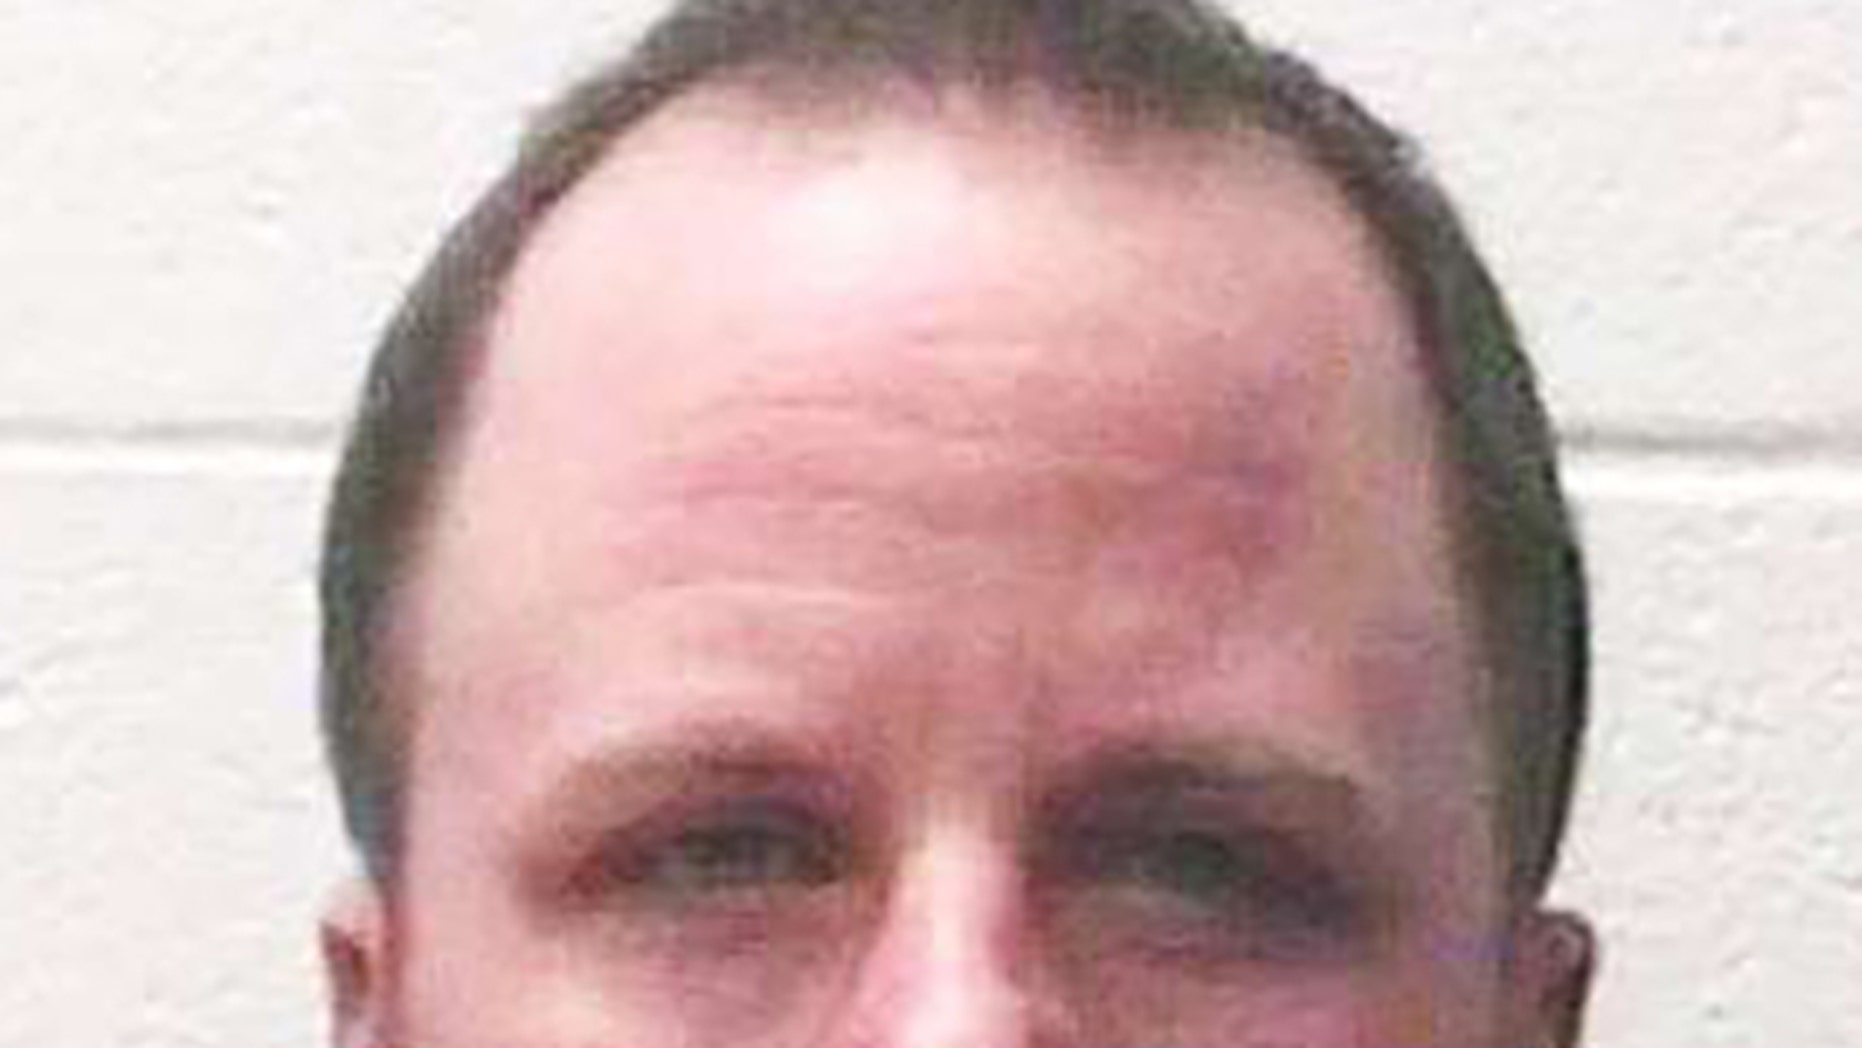 James Peace was arrested last week for allegedly slapping a child.